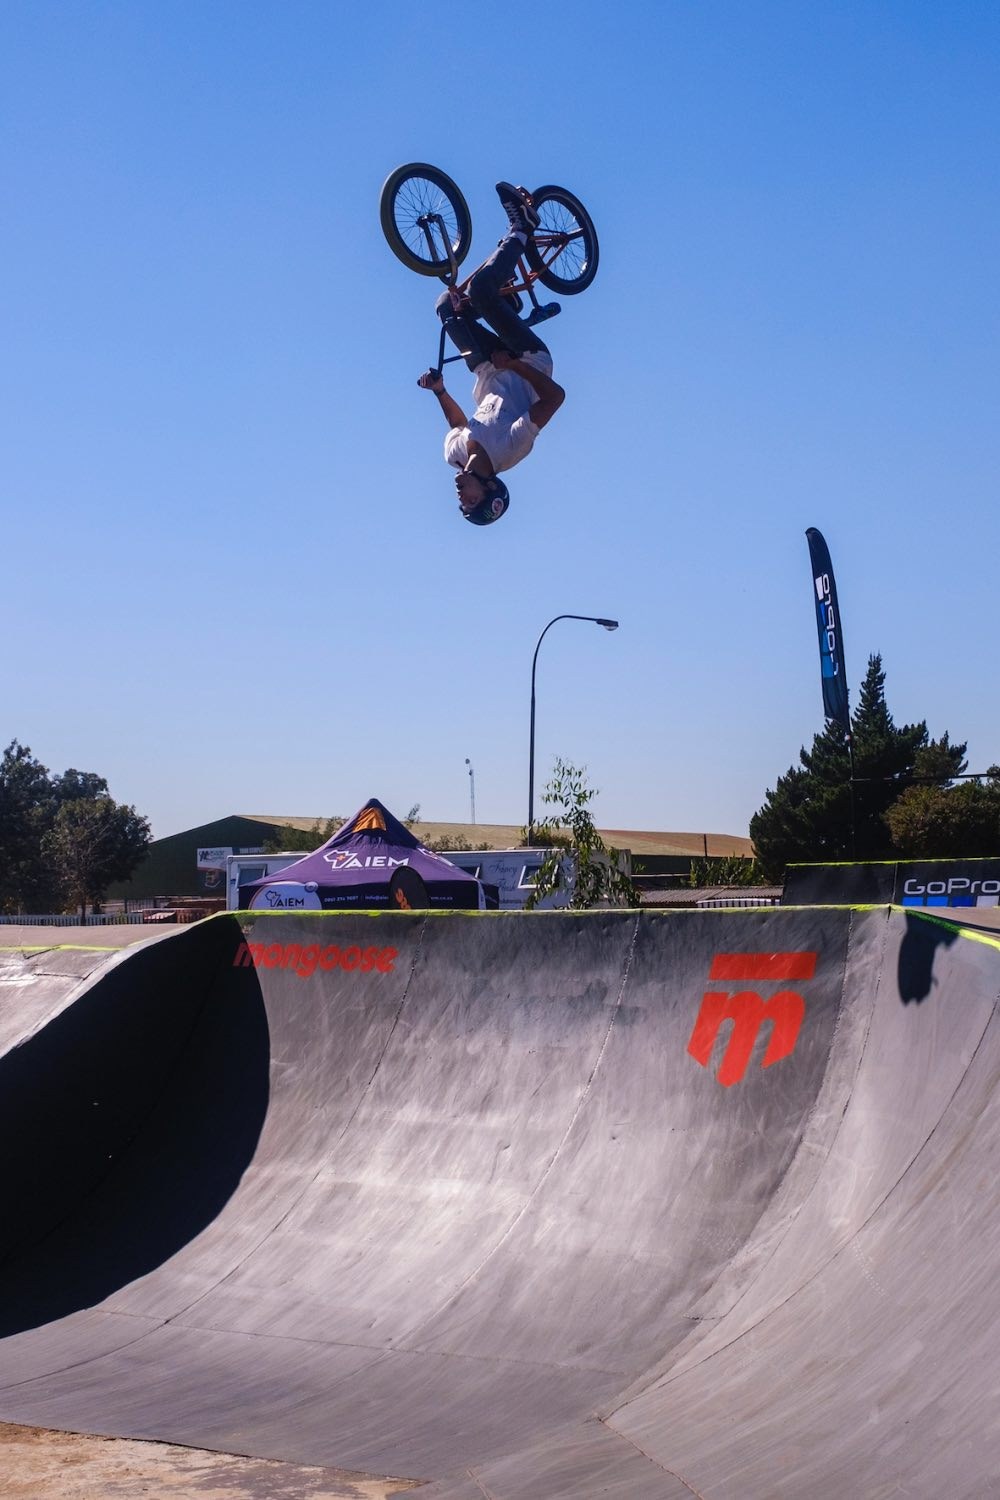 Victor Sawkins competing at the Park Lines BMX Tournament